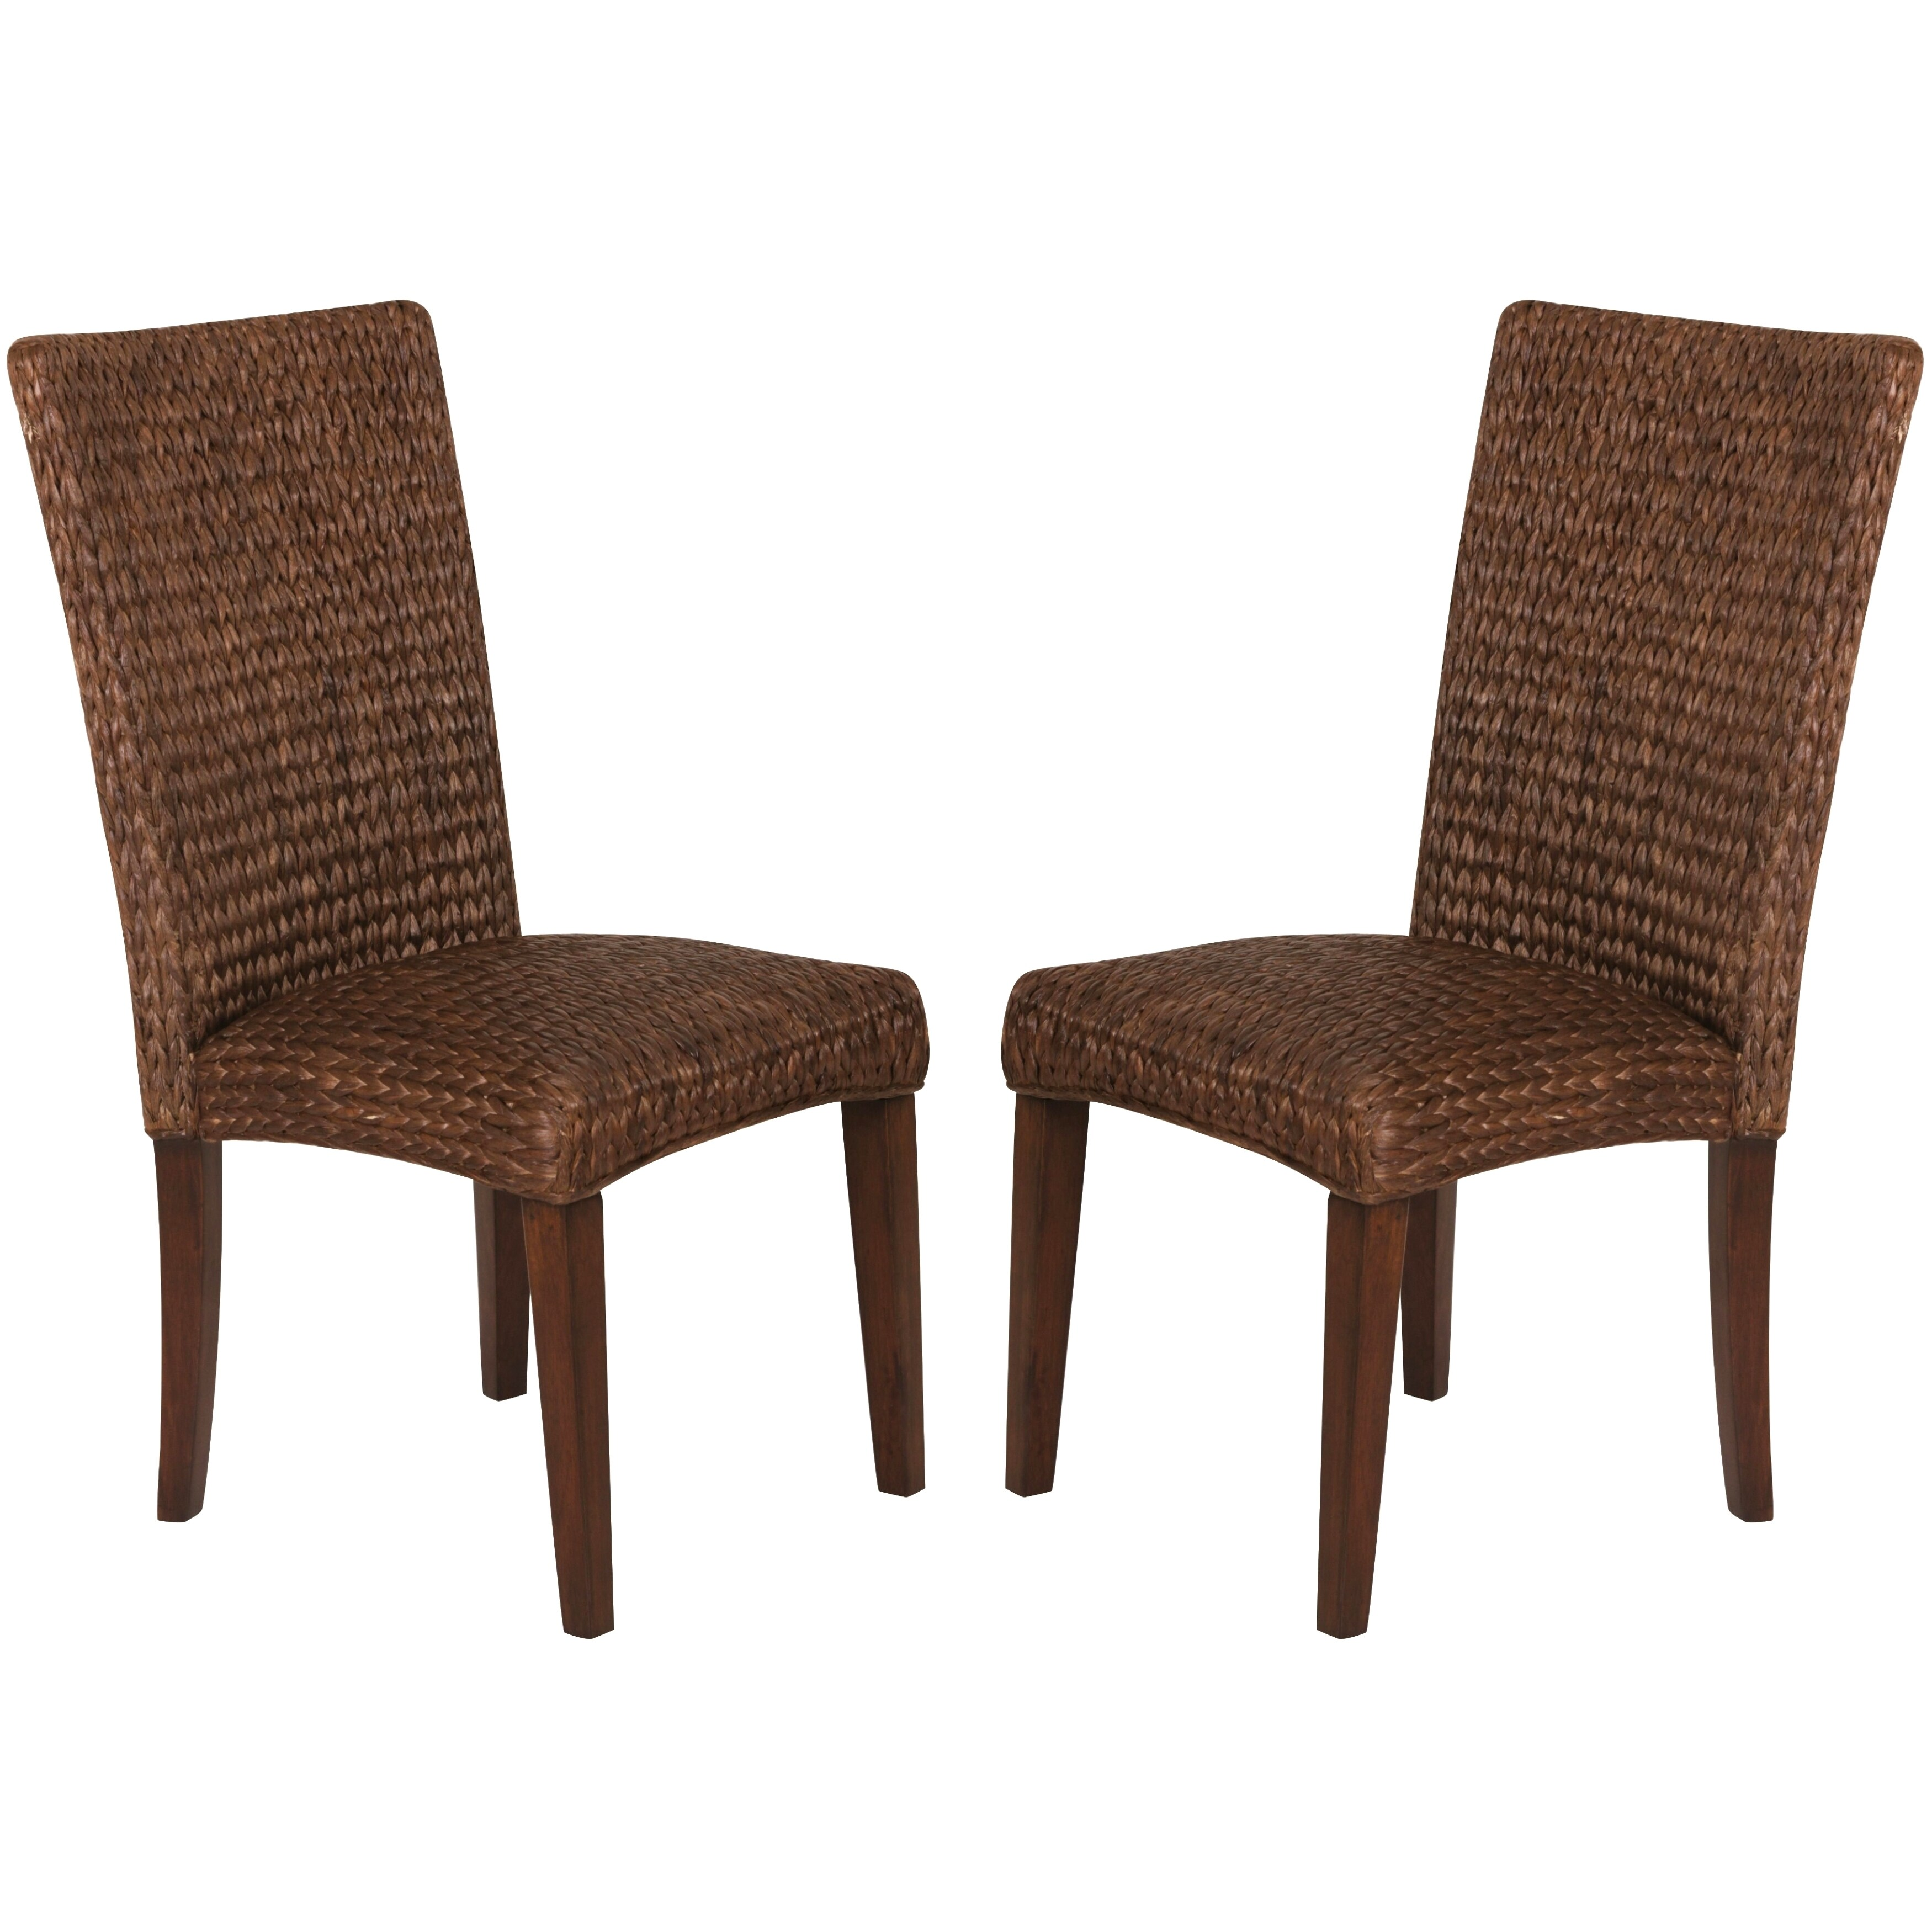 Shop montgomery rattan woven dark brown dining chairs set of 2 free shipping today overstock com 11208435